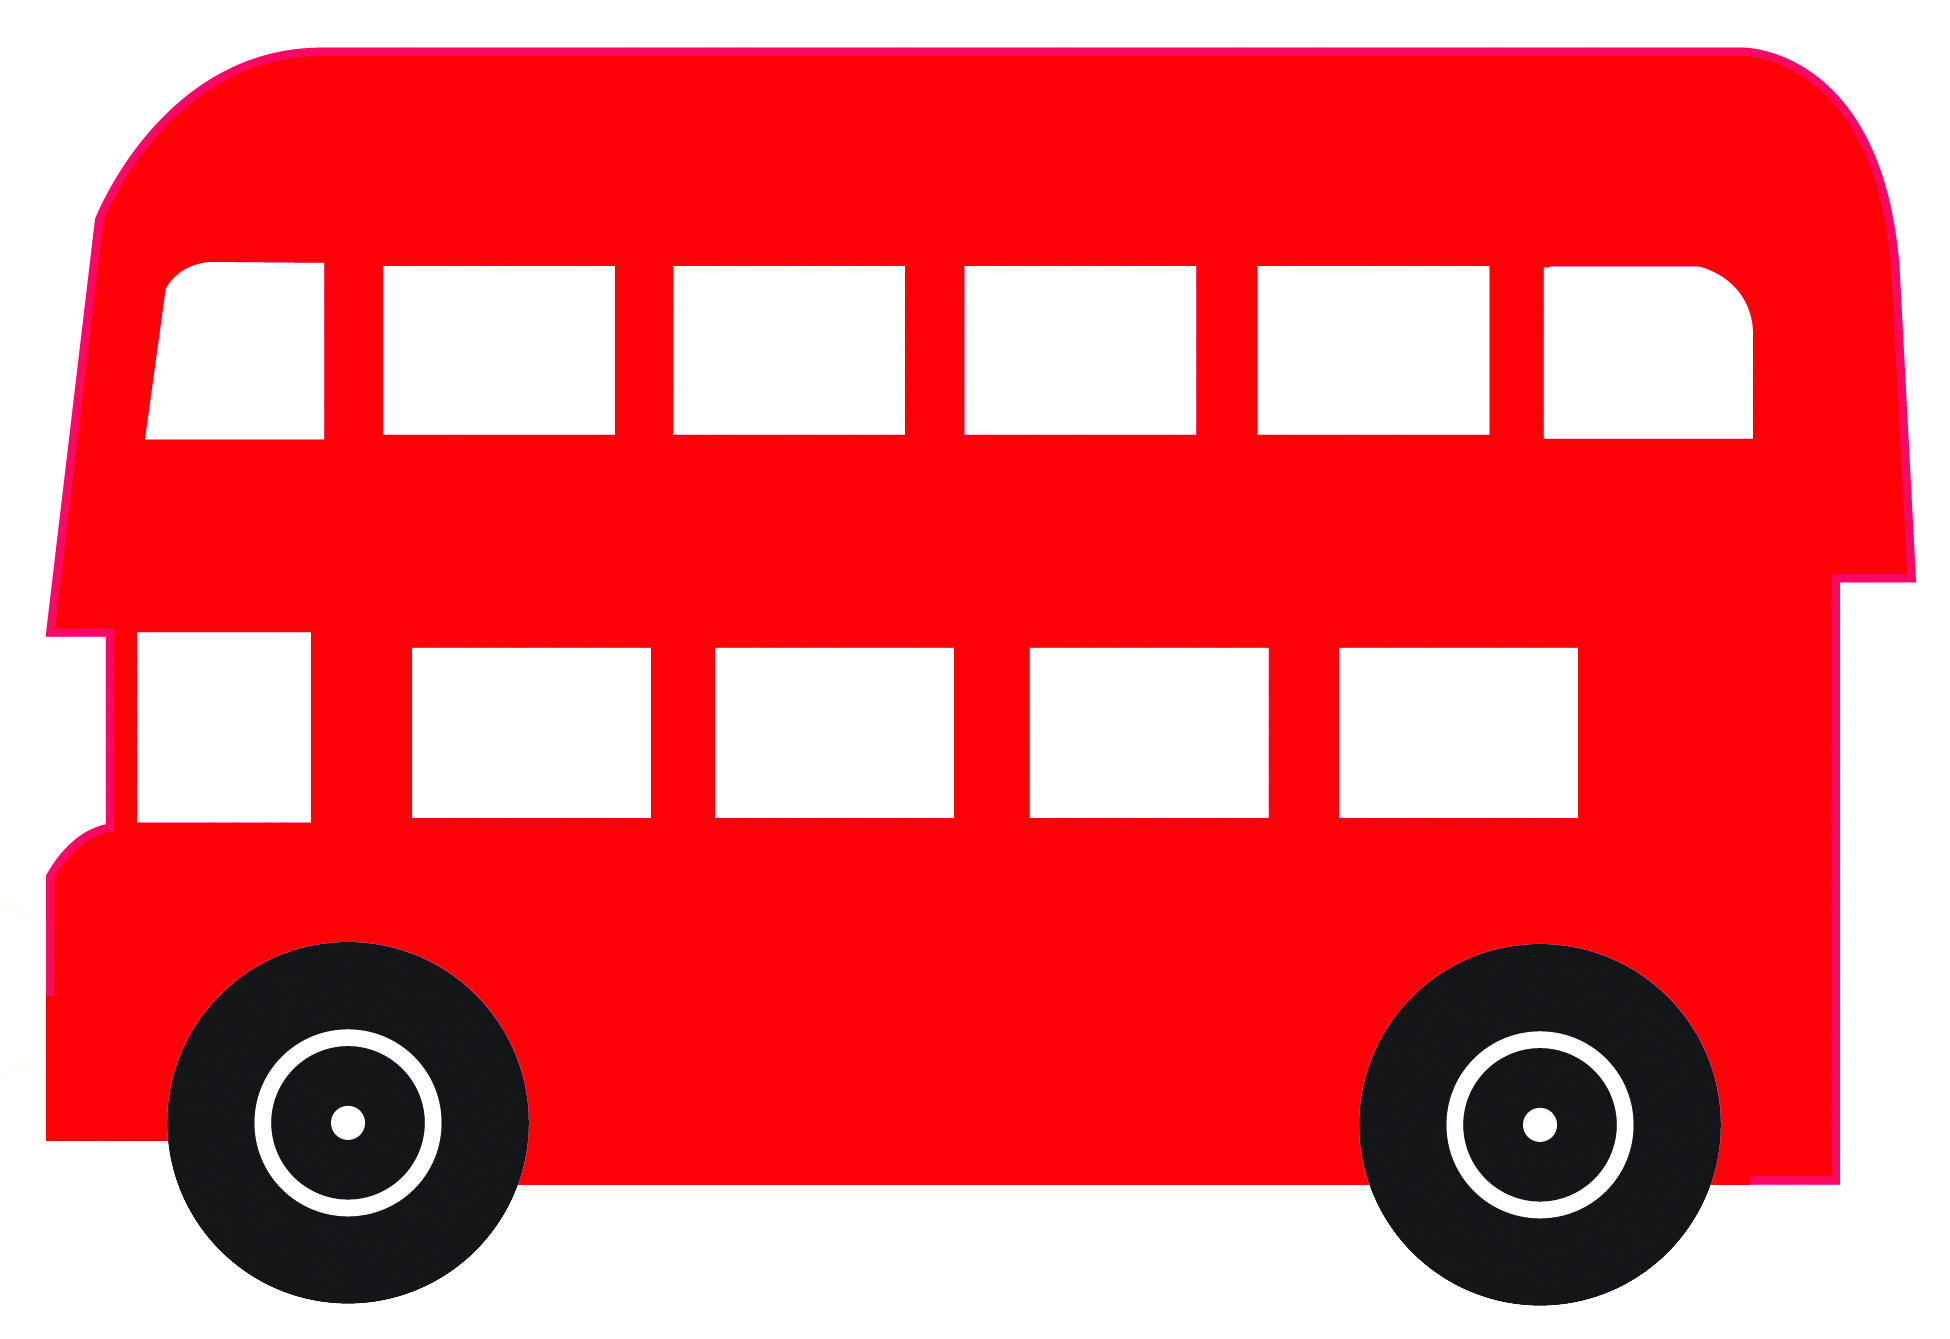 London bus clipart clipart library stock Free London Bus Clipart, Download Free Clip Art, Free Clip Art on ... clipart library stock